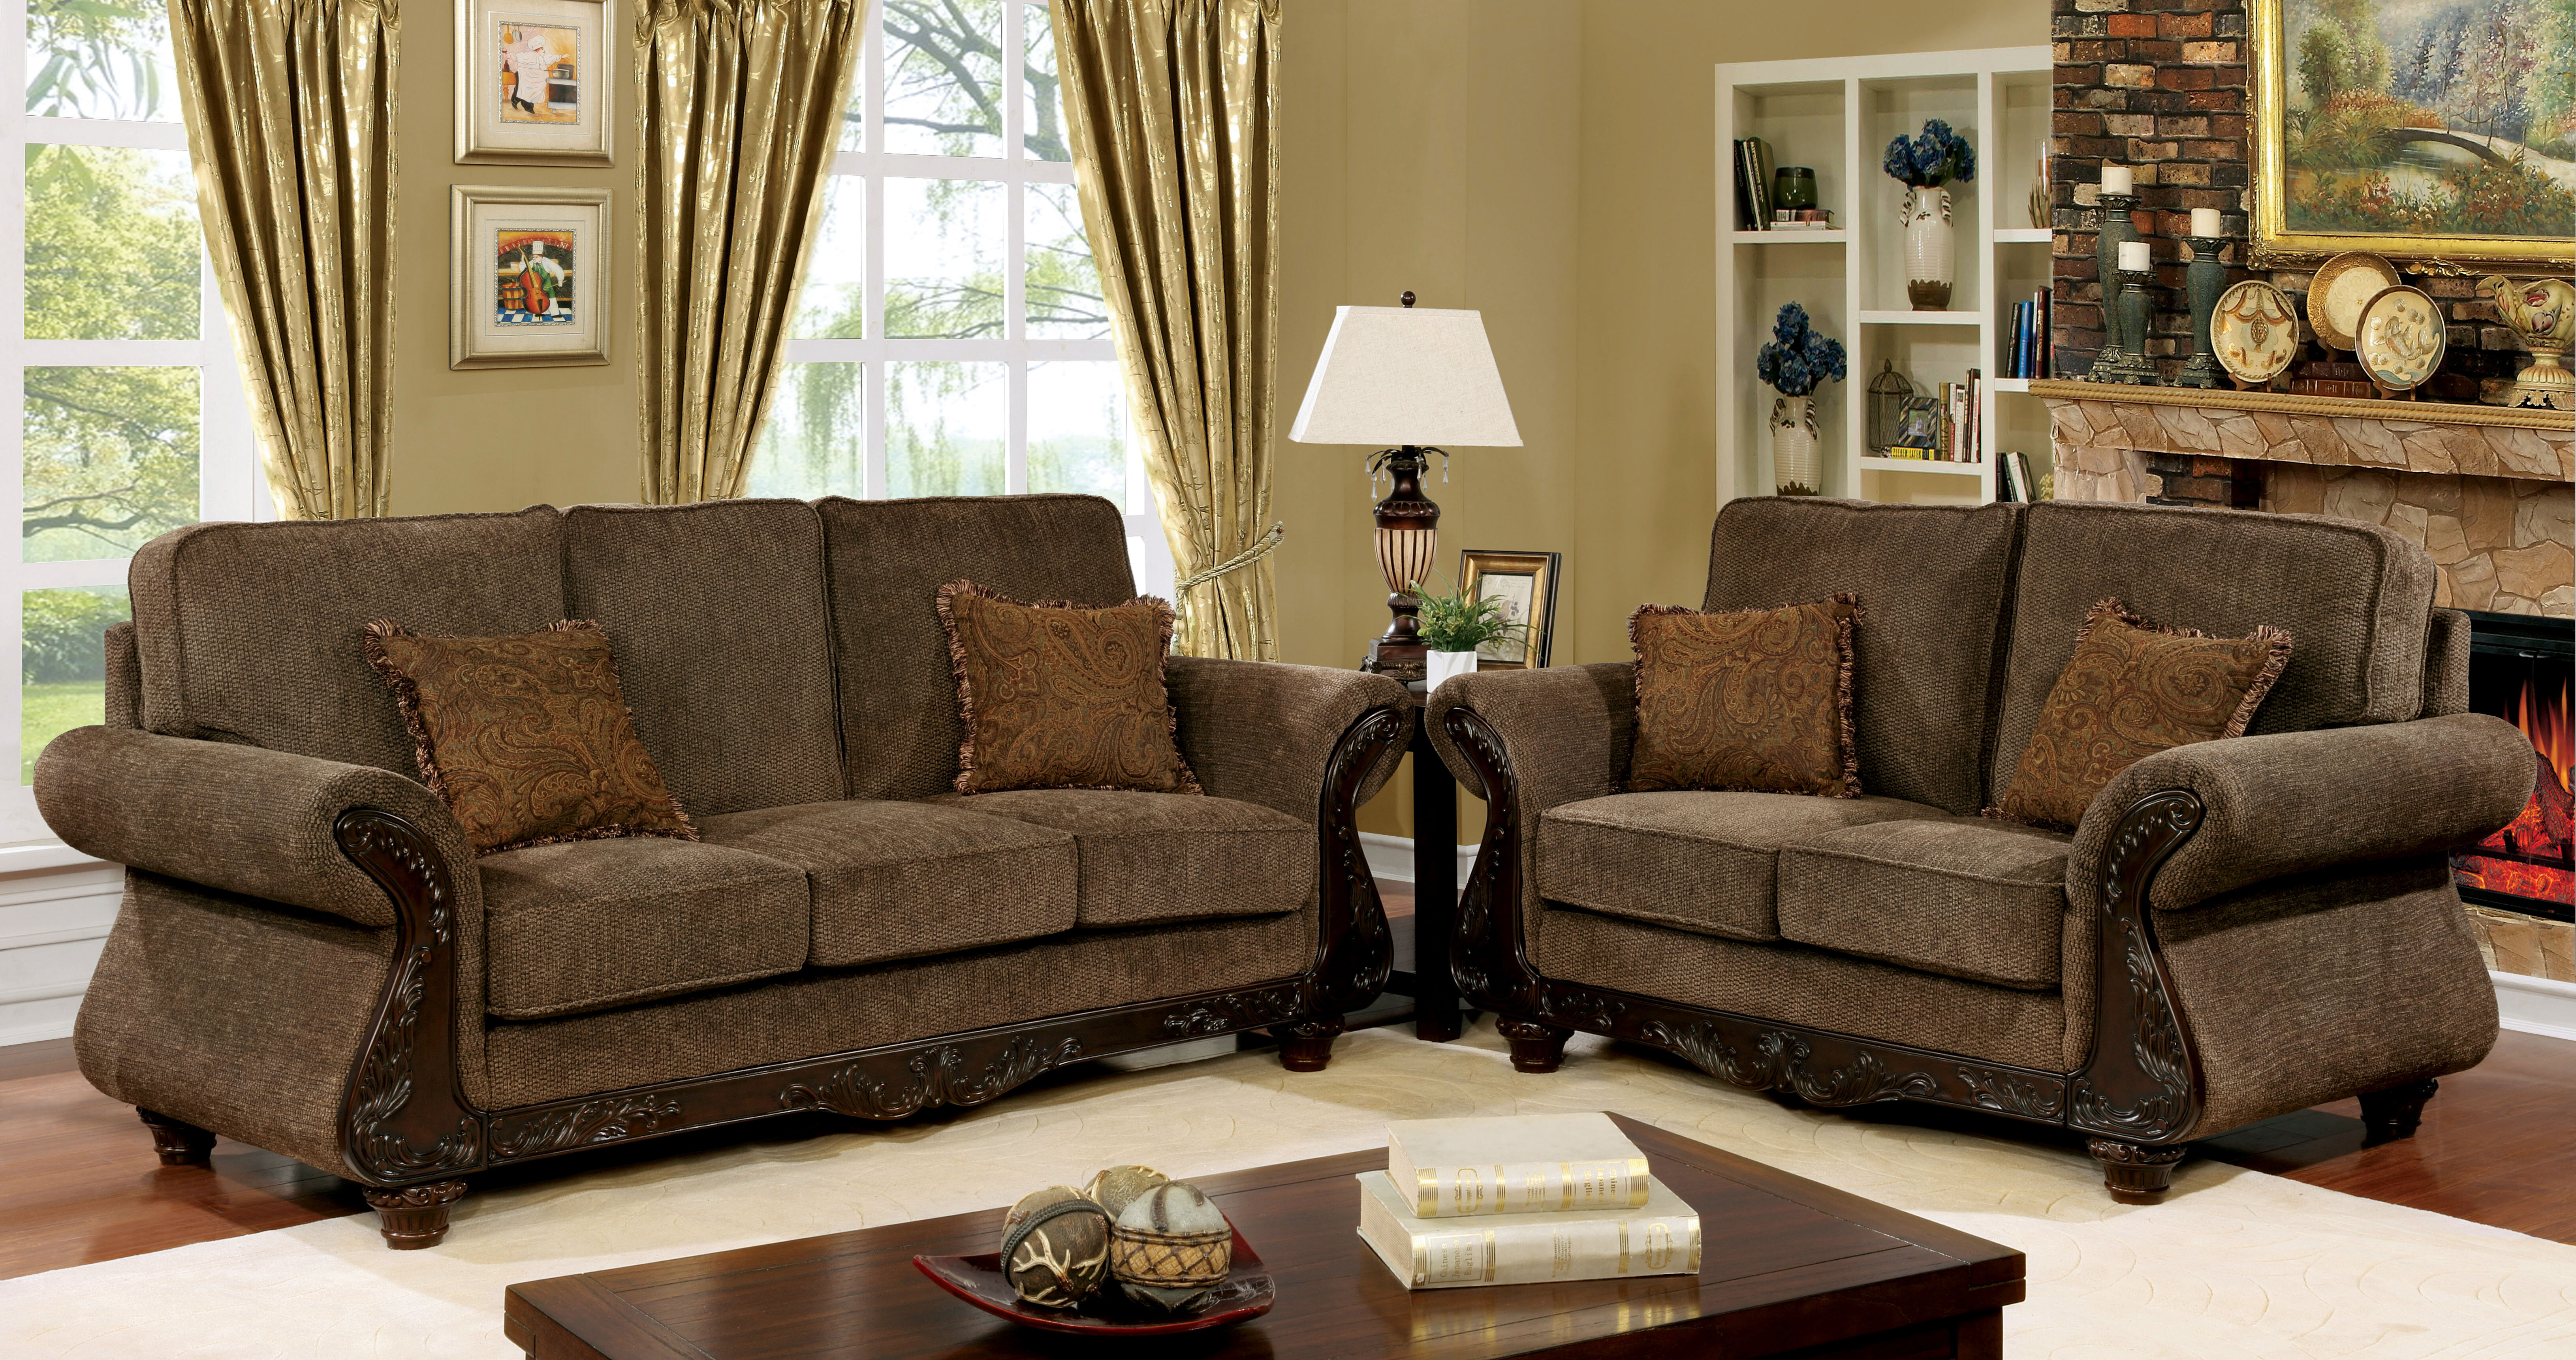 Astoria grand lebo transitional living room collection wayfair